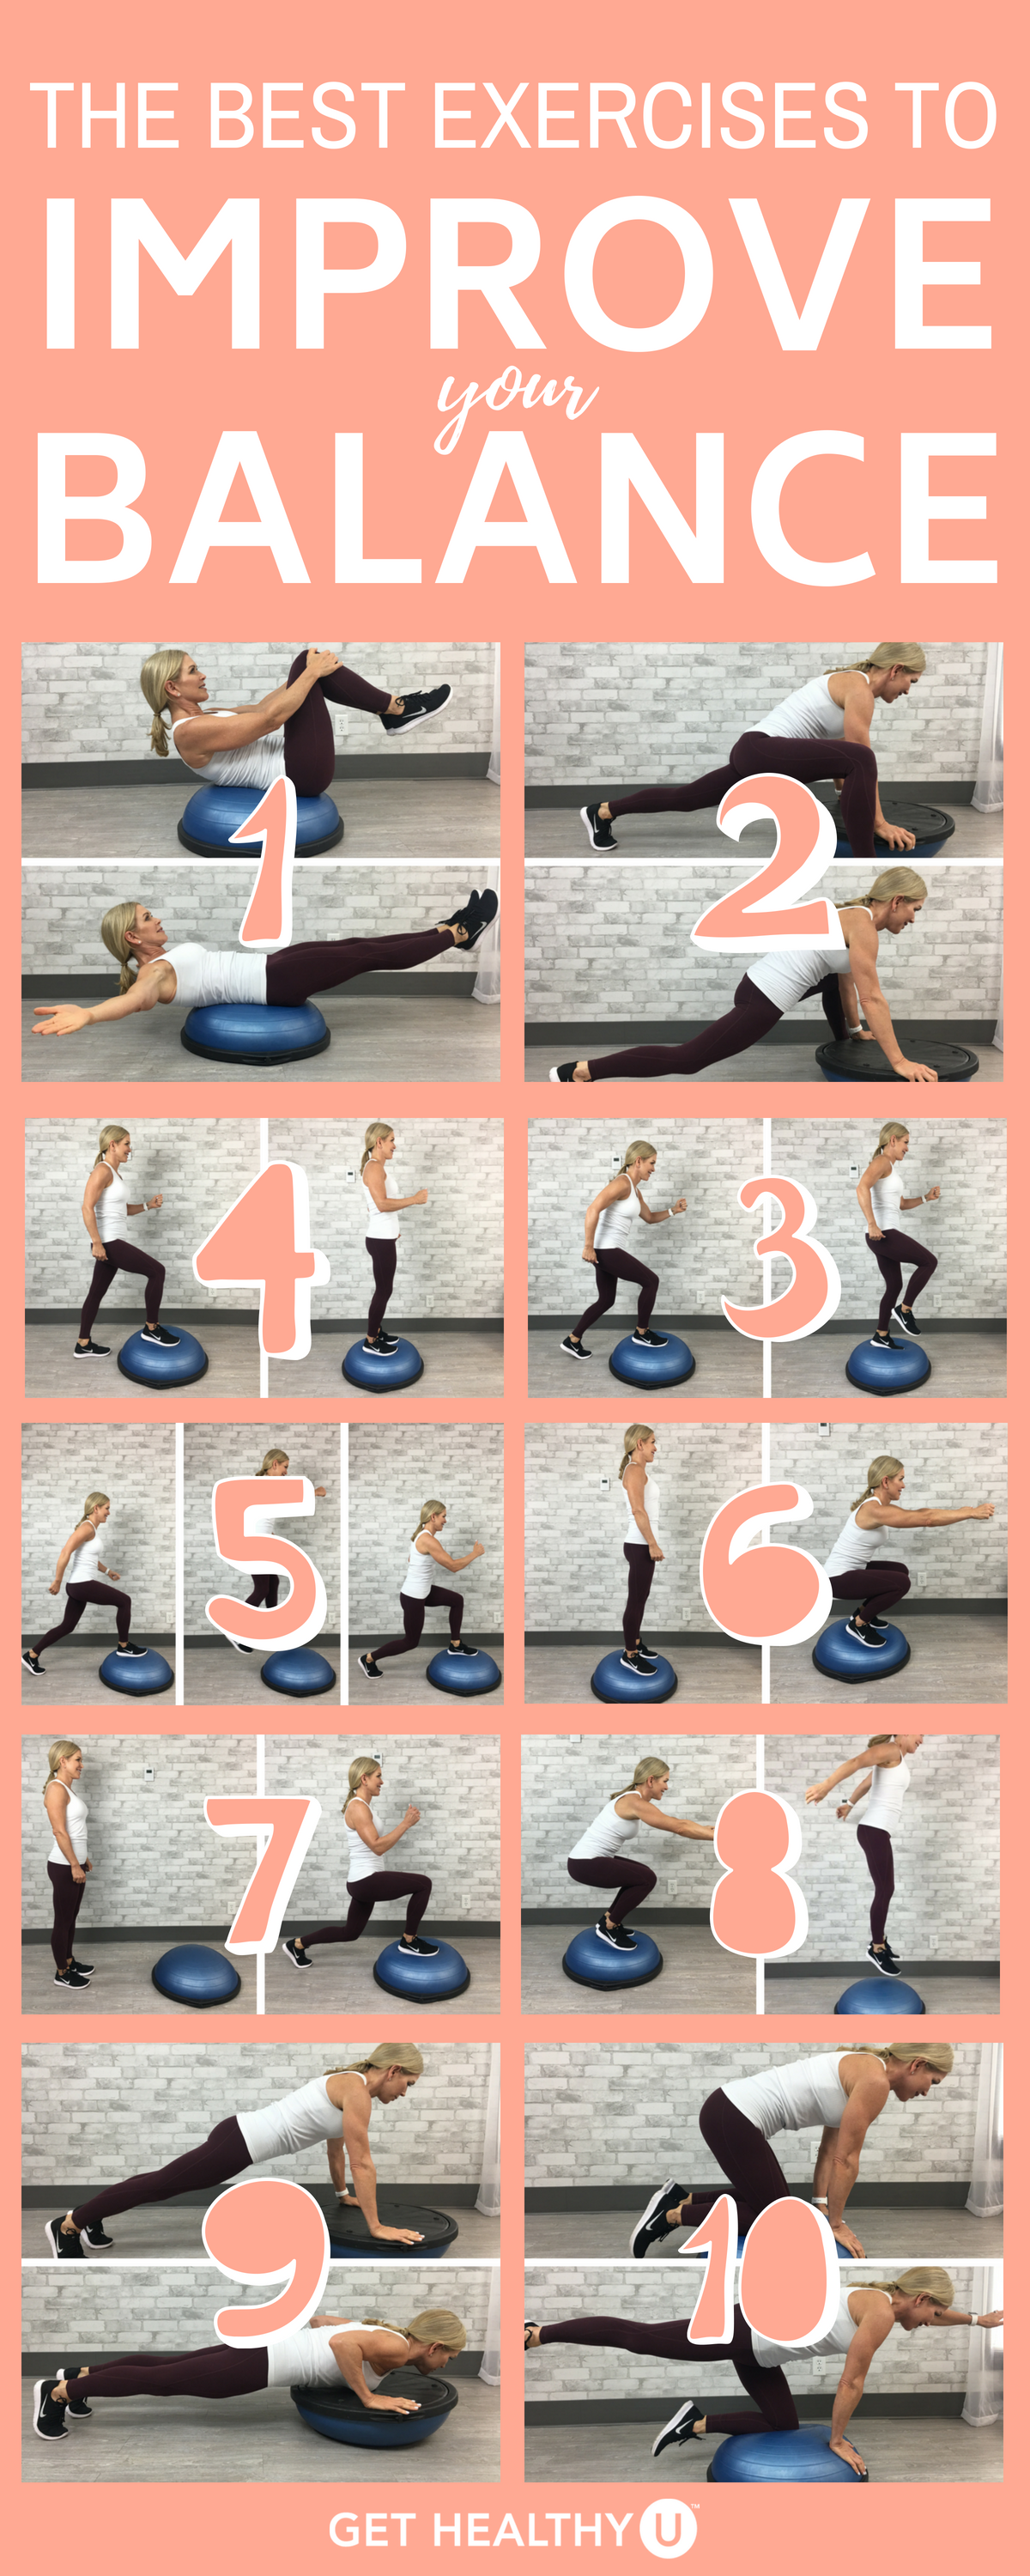 The Most Effective Ways To Improve Your Balance - Get Healthy U